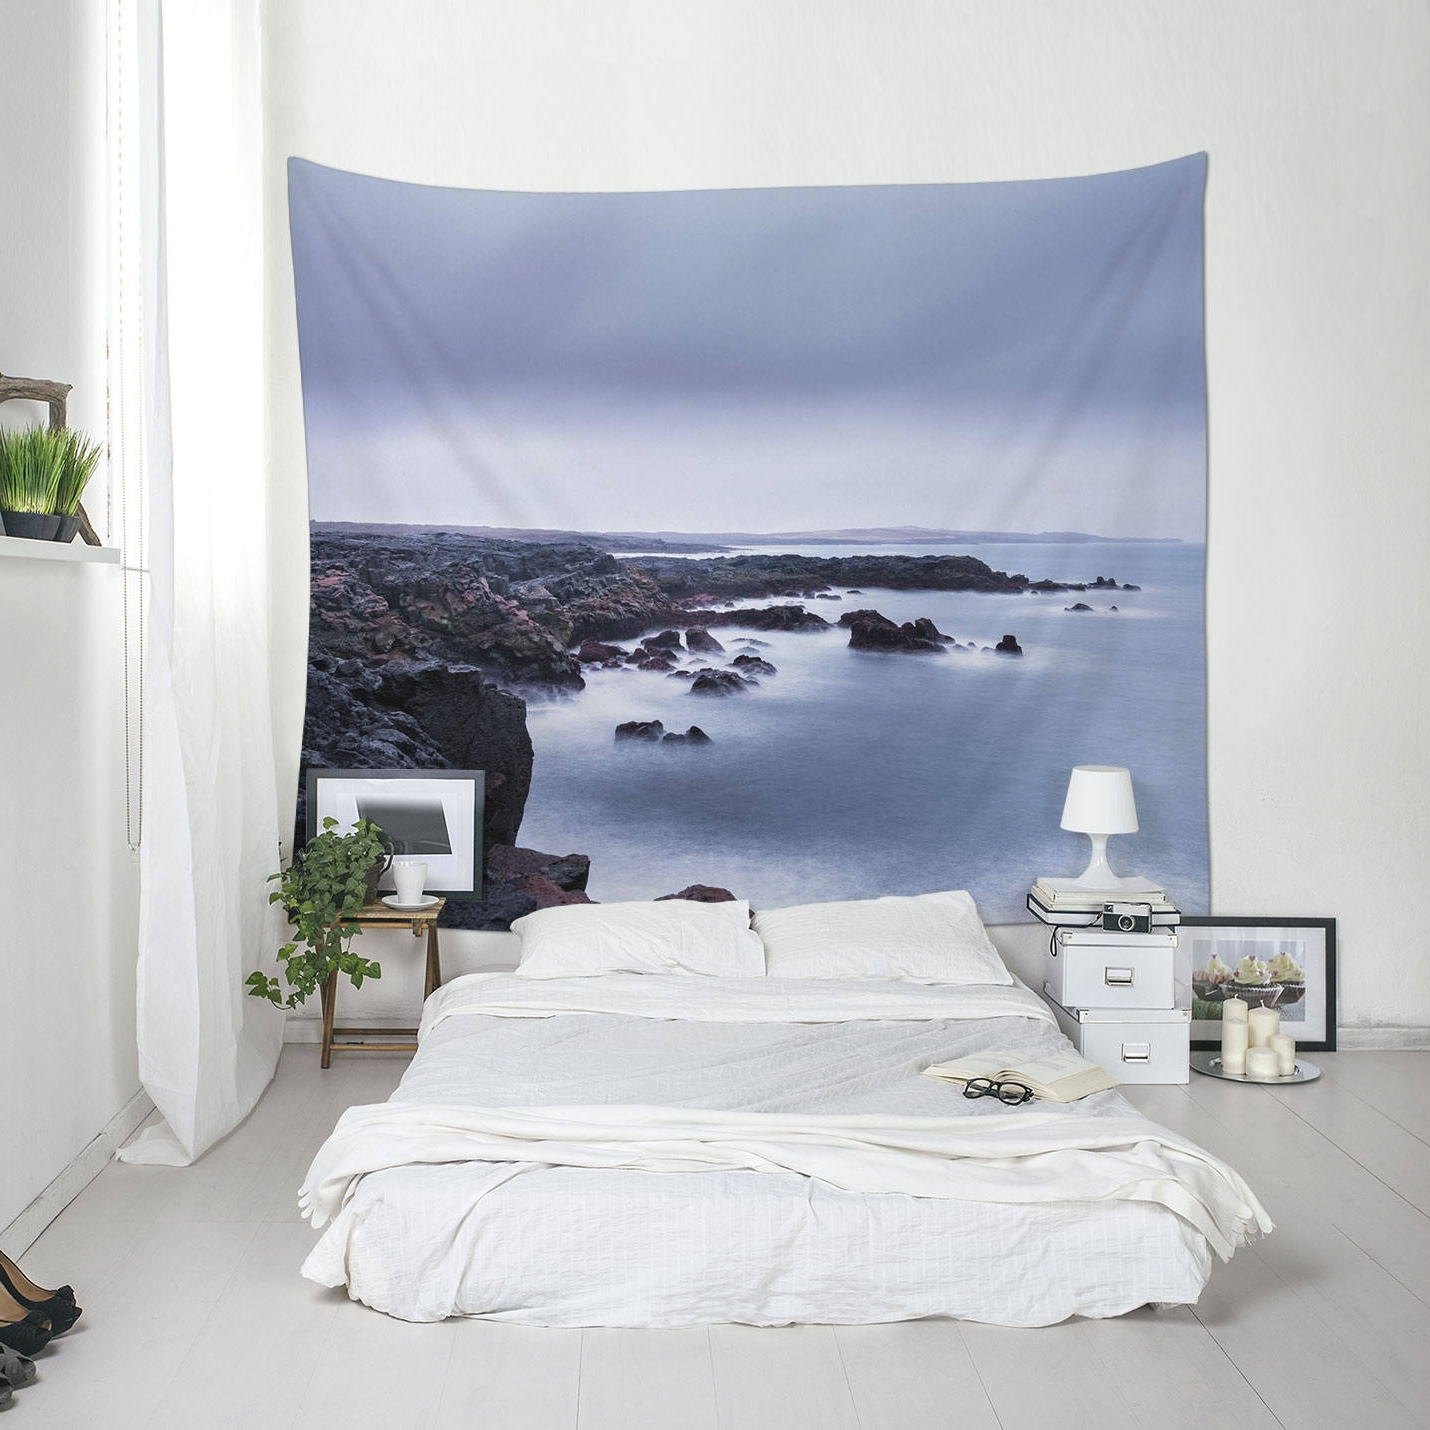 Outdoor Fabric Wall Art For Most Current Coastal Tapestry, Iceland Coast, Landscape Wall Art, Fabric (View 11 of 15)